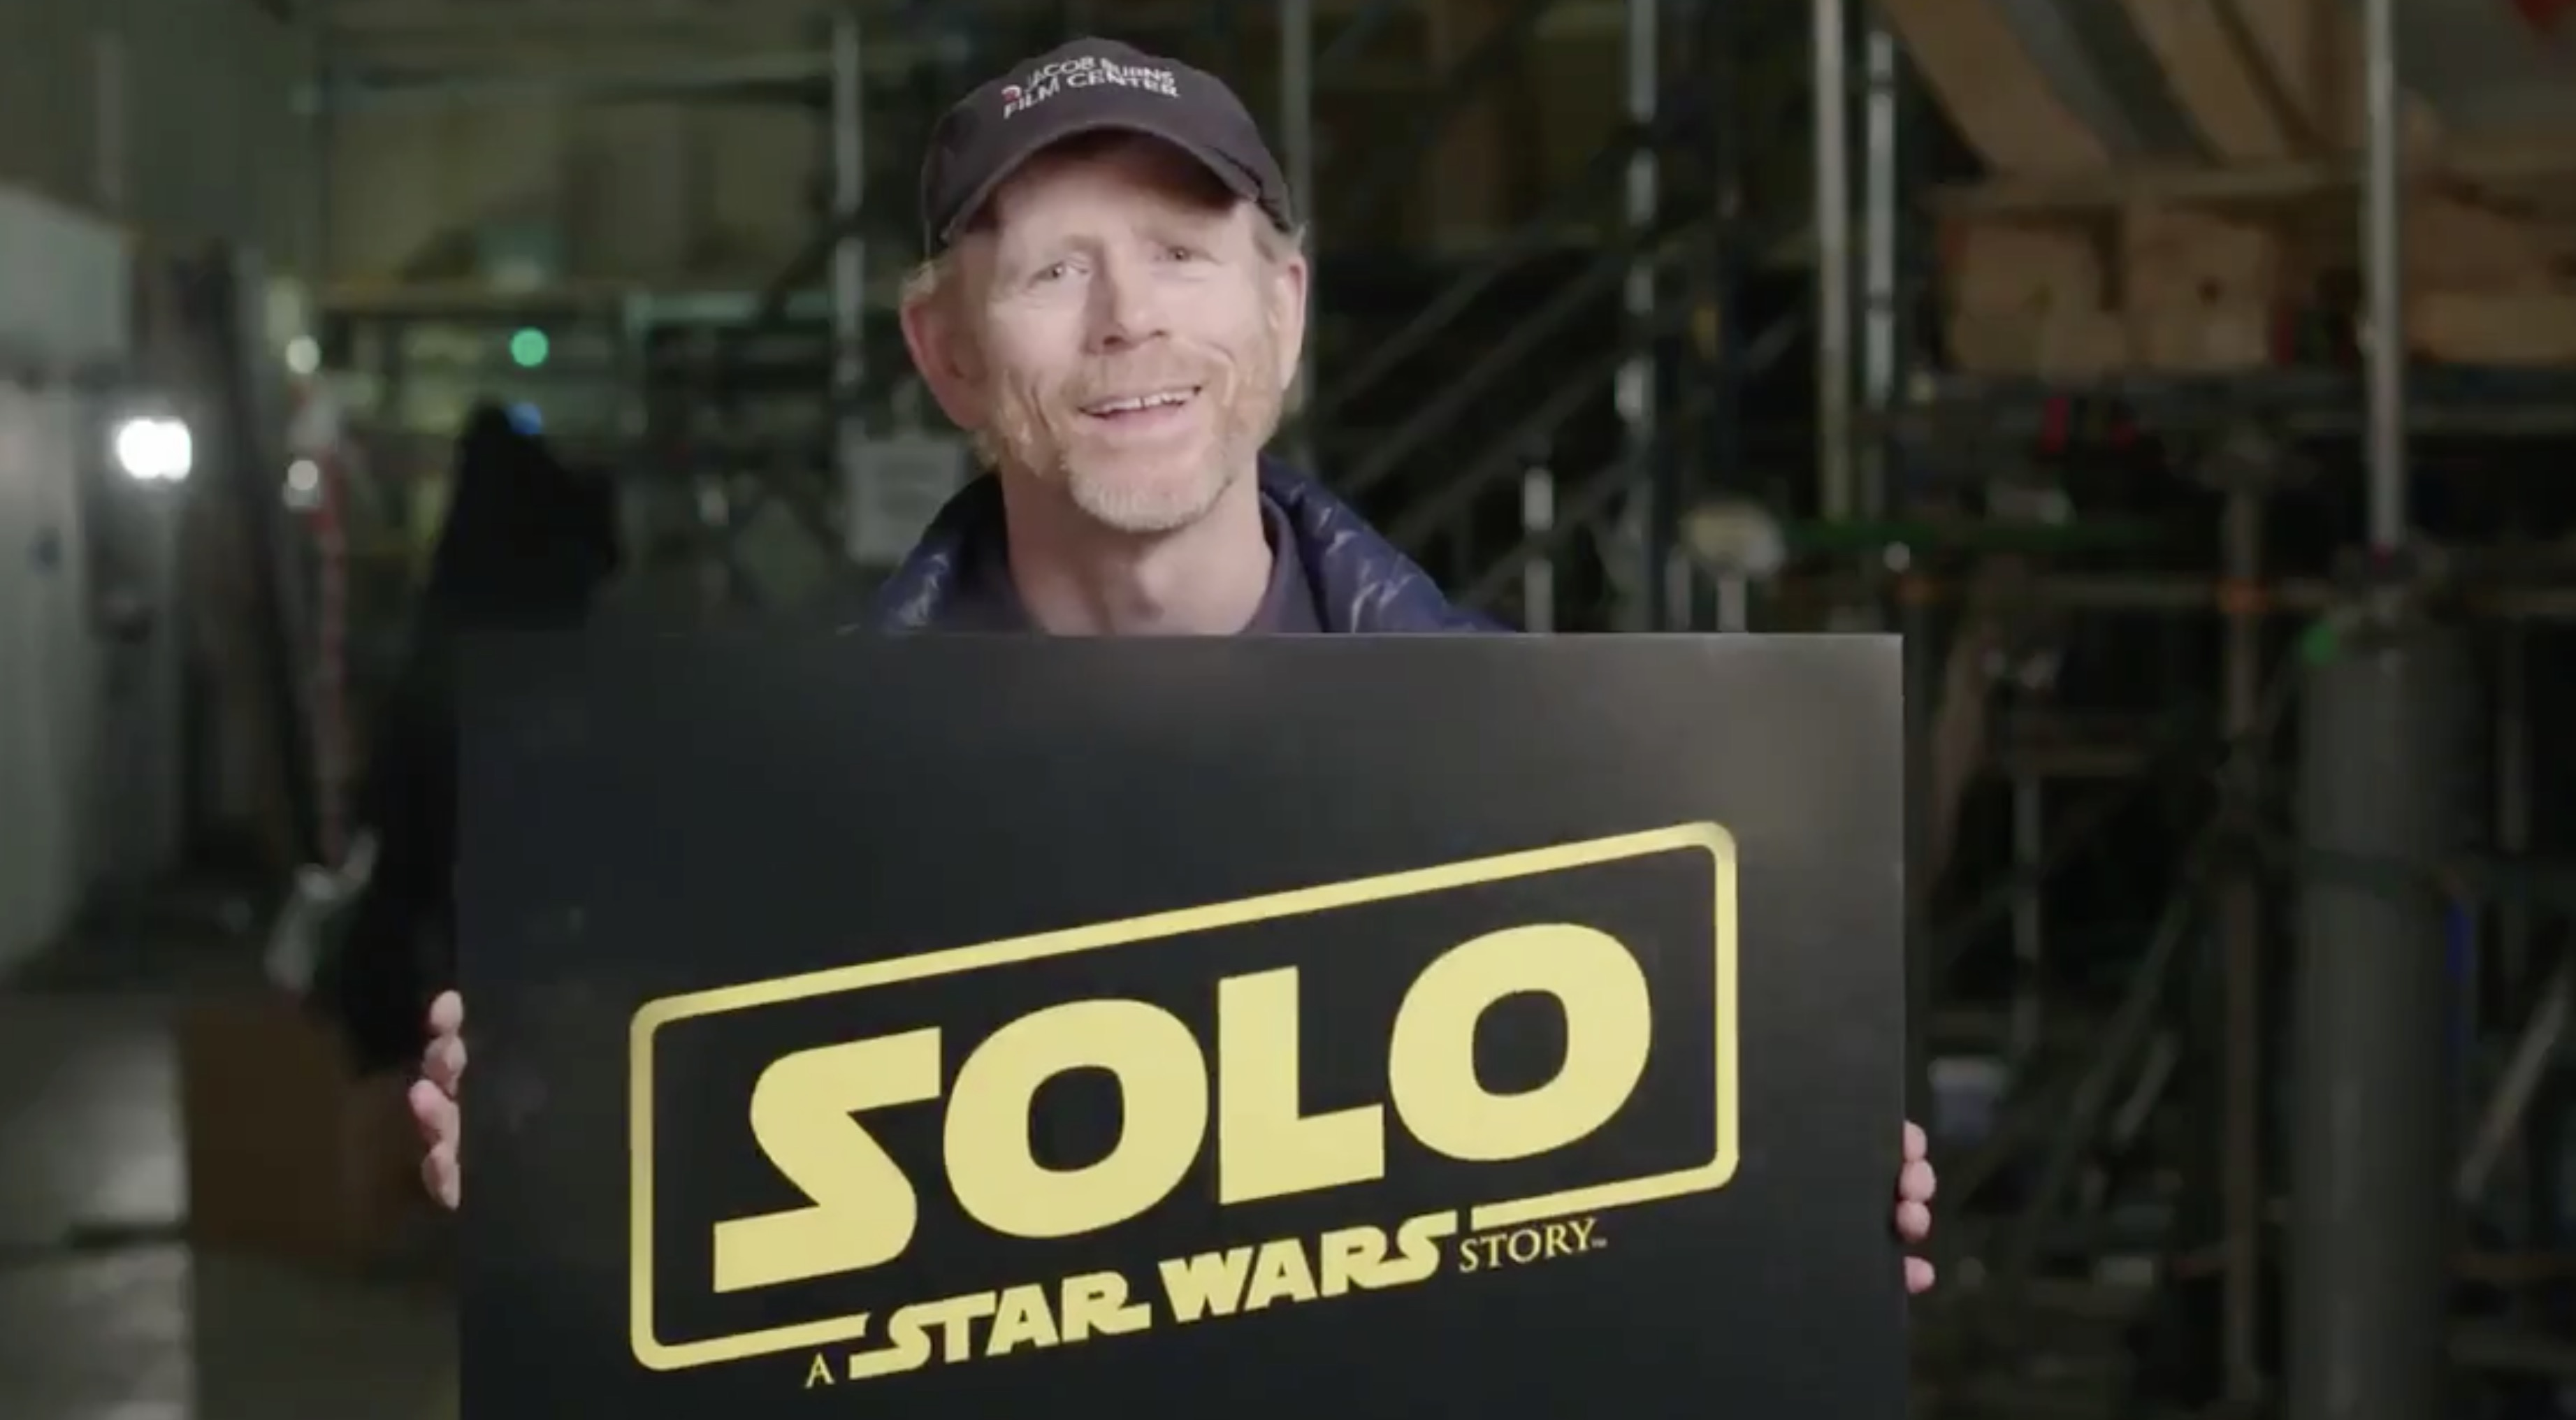 Ron Howard reveals Star Wars Han Solo movie title (Twitter, JG)